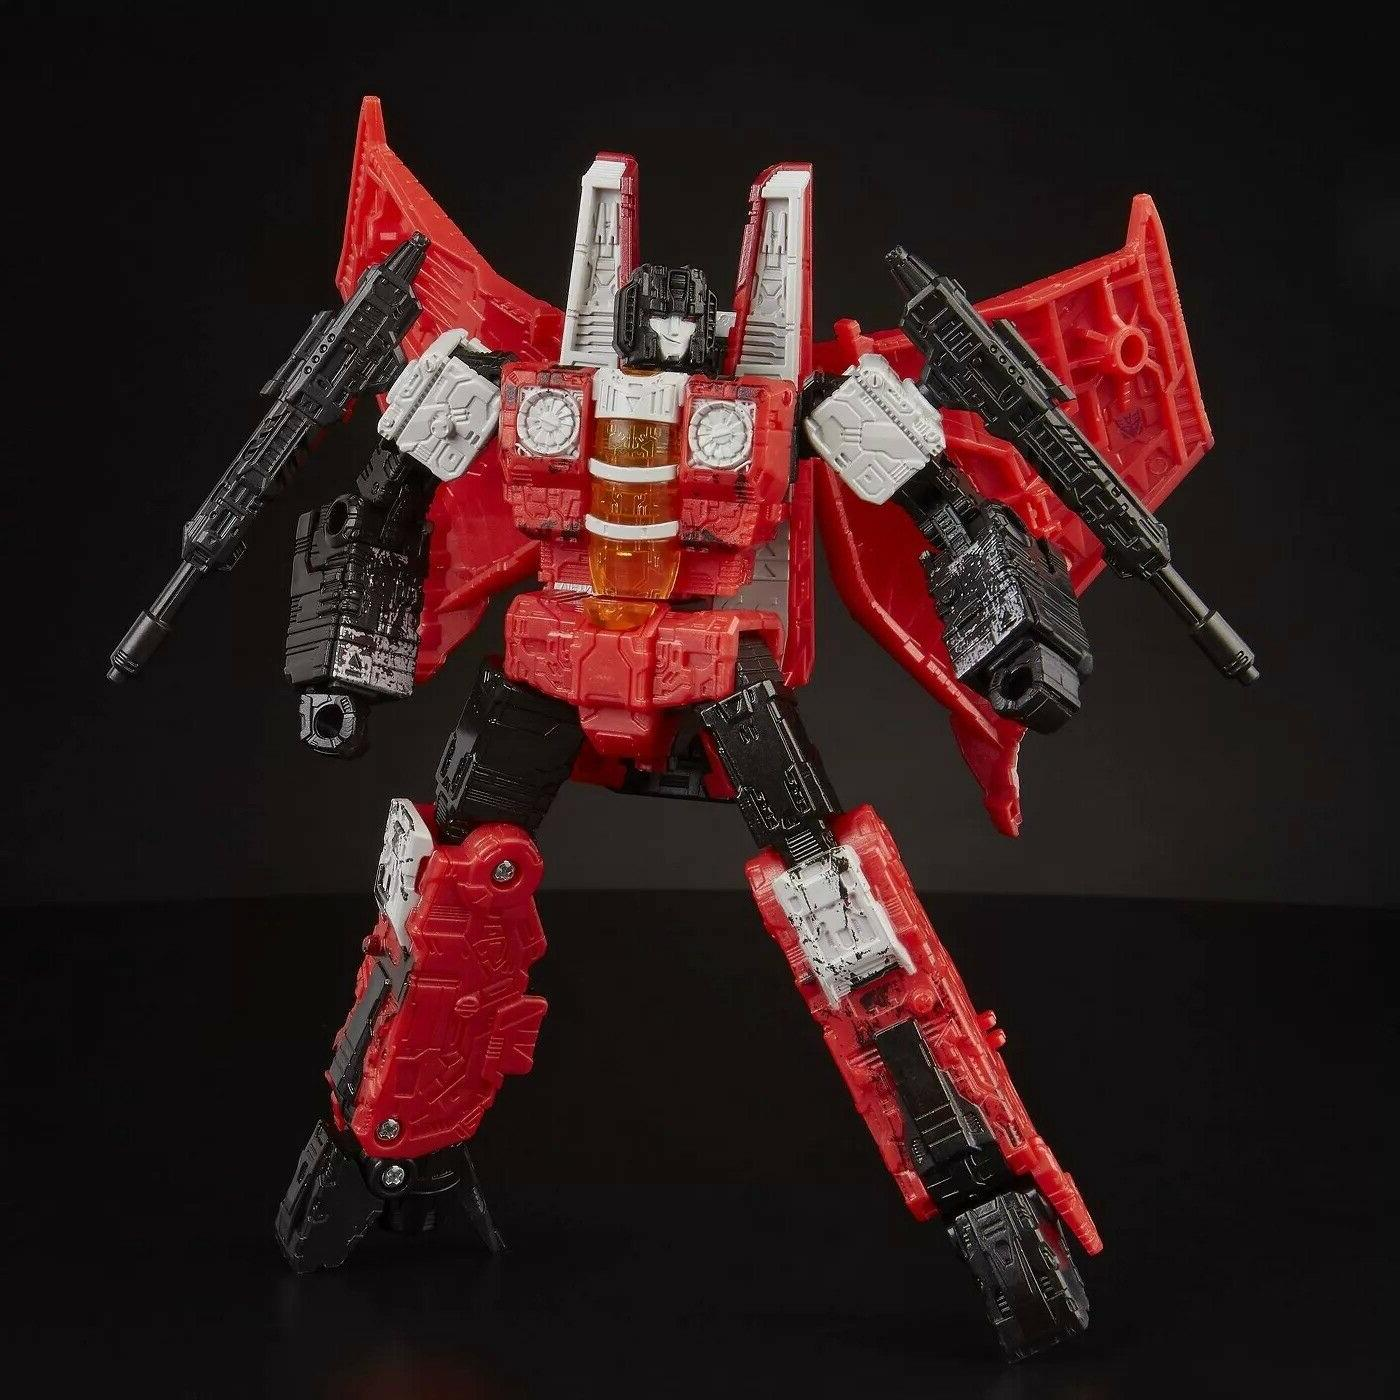 Transformers Red War Cybertron Voyager Hasbro